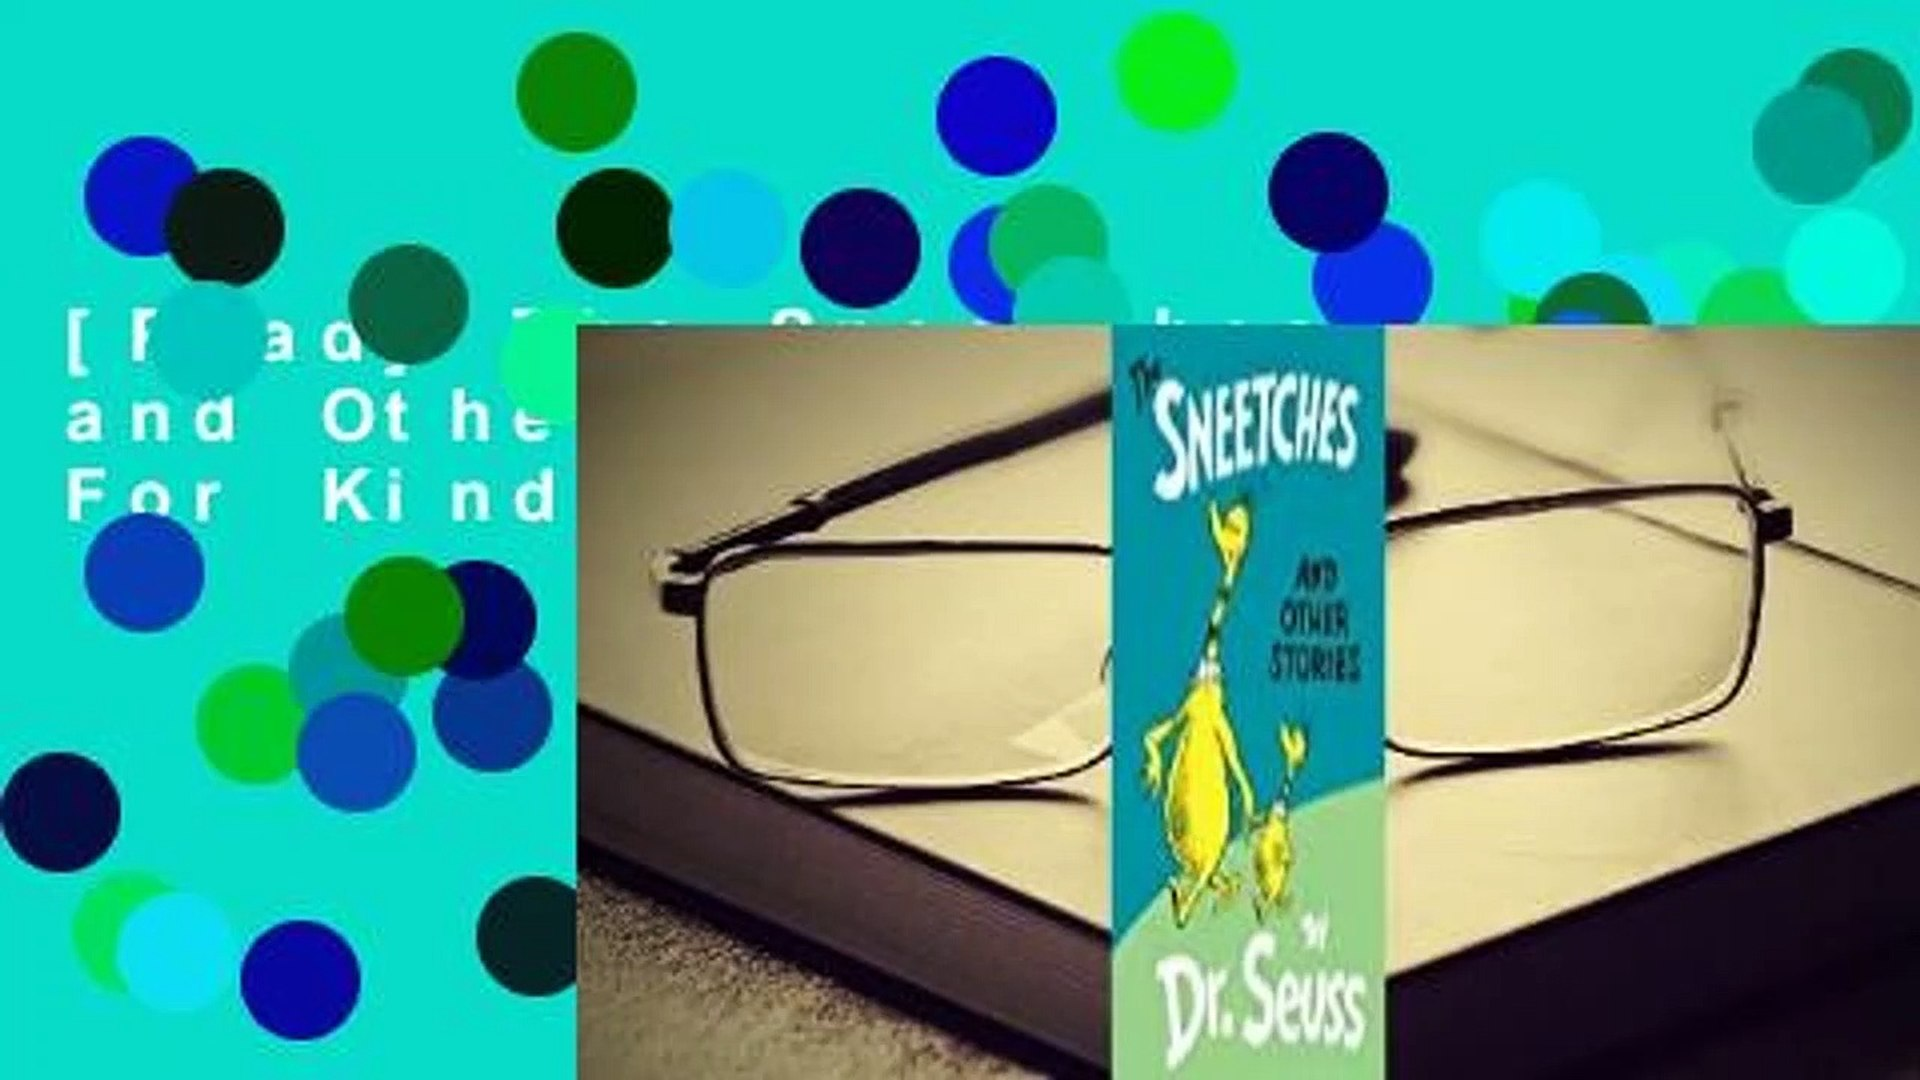 [Read] The Sneetches and Other Stories  For Kindle